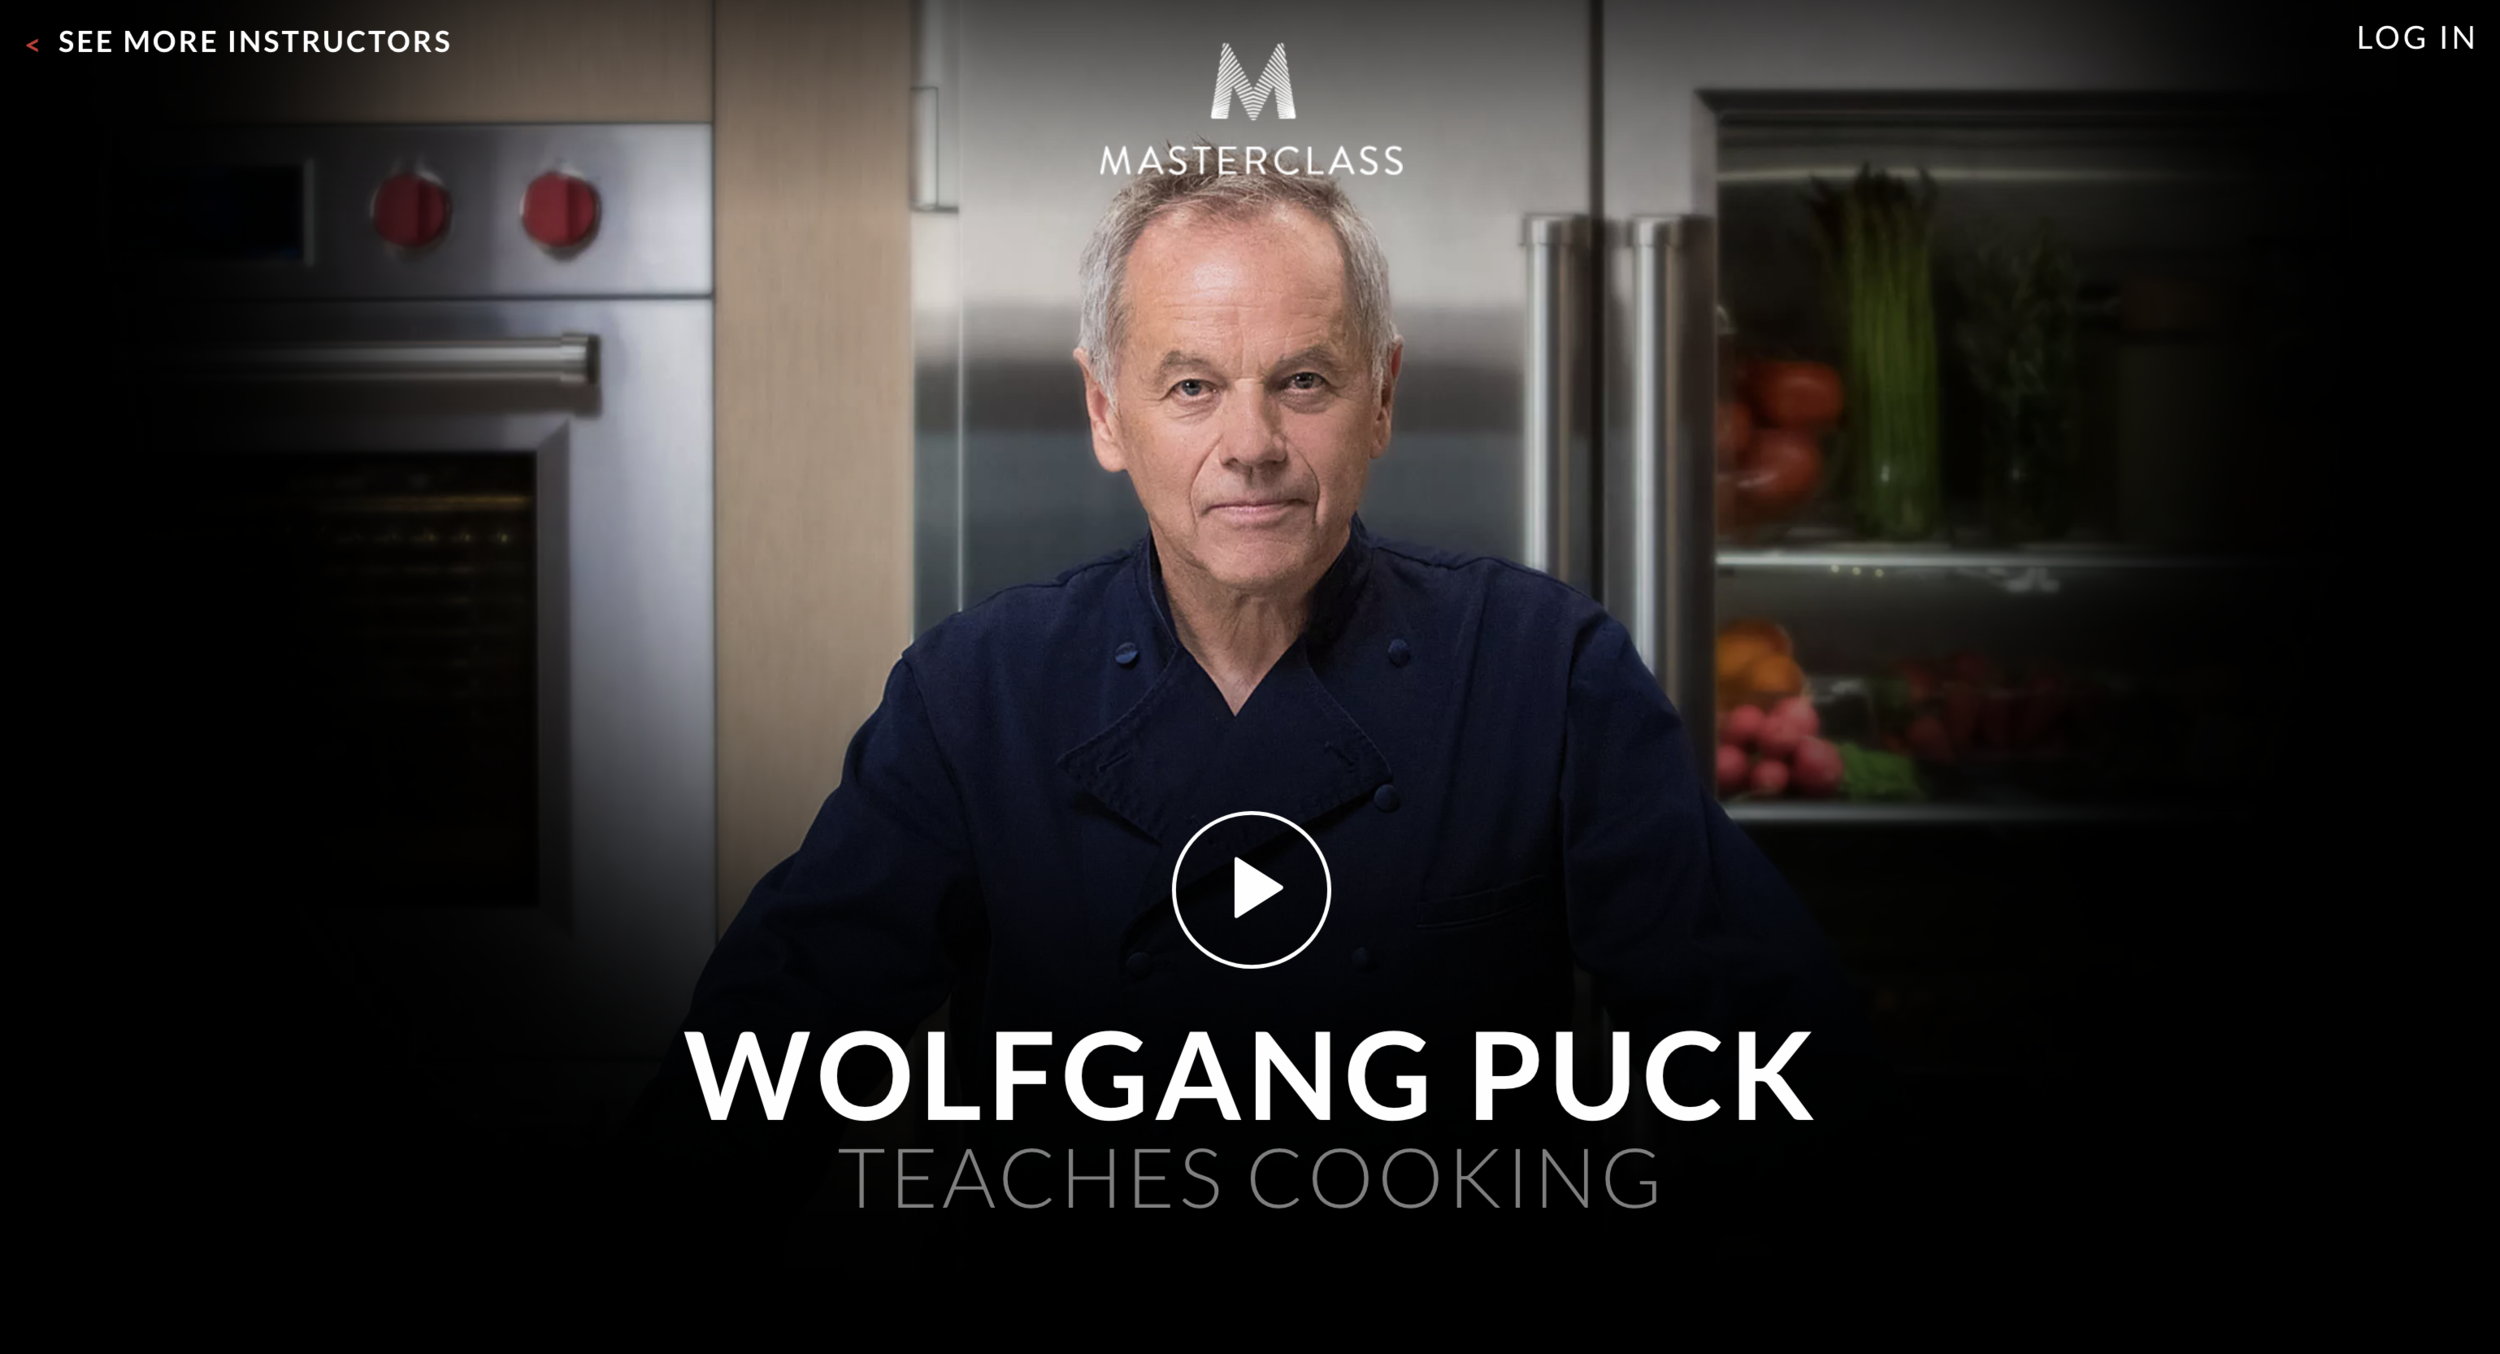 WOLF GANGPUCK - MASTERCLASS   LEGEND HAS IT WOLFGANG PUCK CAME UP WITH HIS FAMOUS SMOKED SALMON PIZZA WHEN HIS RESTAURANT RAN OUT OF BAGELS—AND ENDED UP CHANGING THE WAY AMERICA COOKS. IN HIS MASTERCLASS, THE FIVE-TIME JAMES BEARD AWARD-WINNING CHEF BEHIND MORE THAN 100 RESTAURANTS BRINGS YOU INTO HIS KITCHEN. YOU'LL LEARN NOT ONLY HOW TO MASTER STARTERS, MAINS, SIDES, AND COCKTAILS, BUT ALSO HOW TO TAKE RISKS TO CREATE MEMORABLE RECIPES OF YOUR OWN.